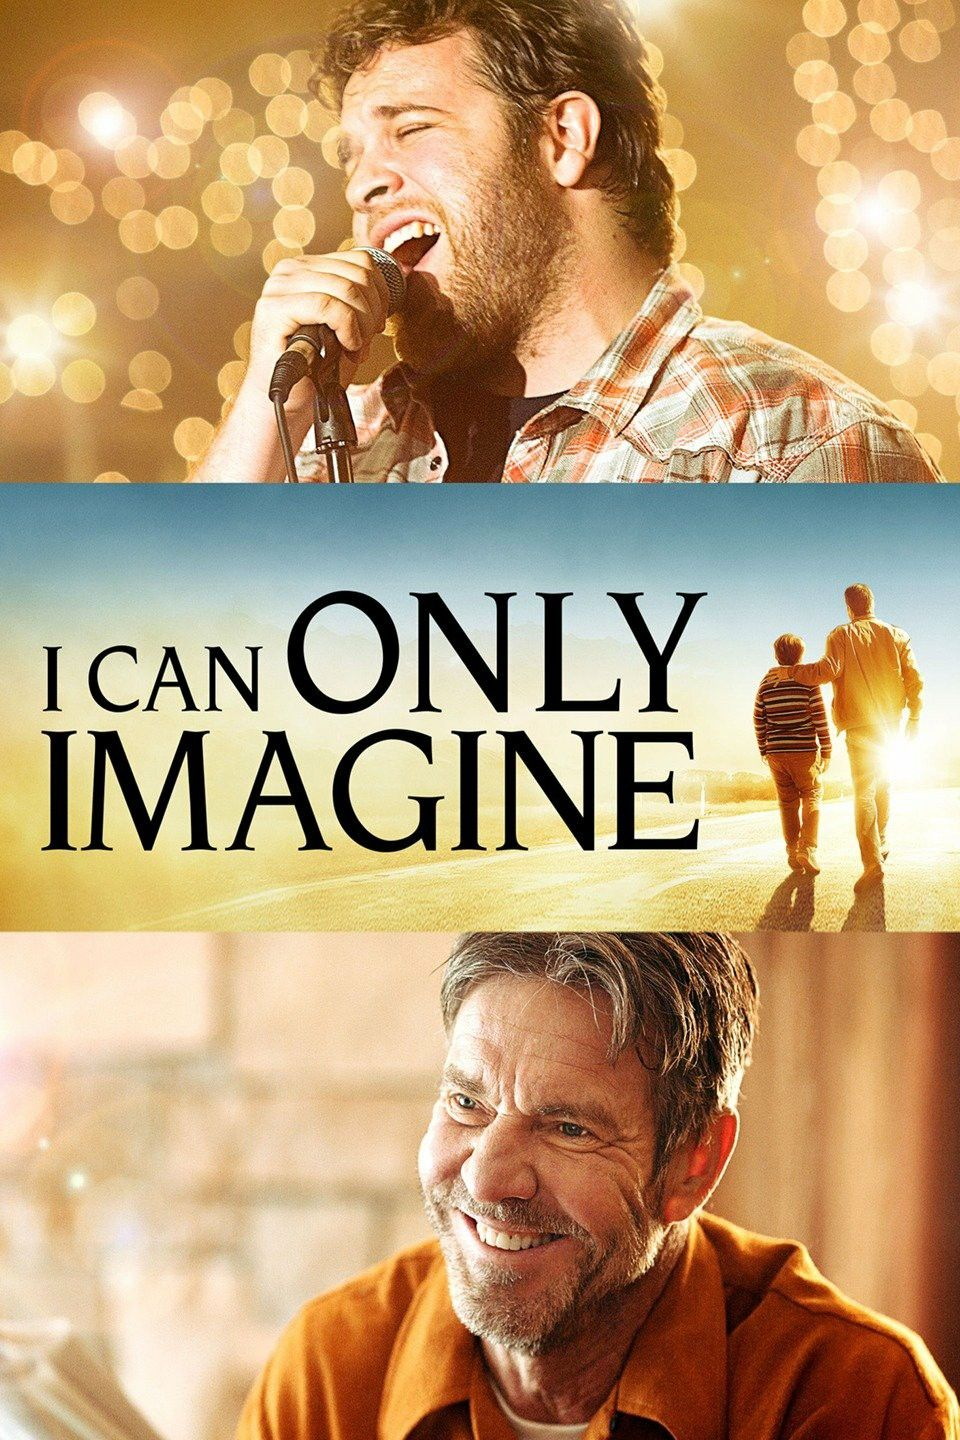 Pin by MiMi Kelly on Faith Movies Inspirational movies